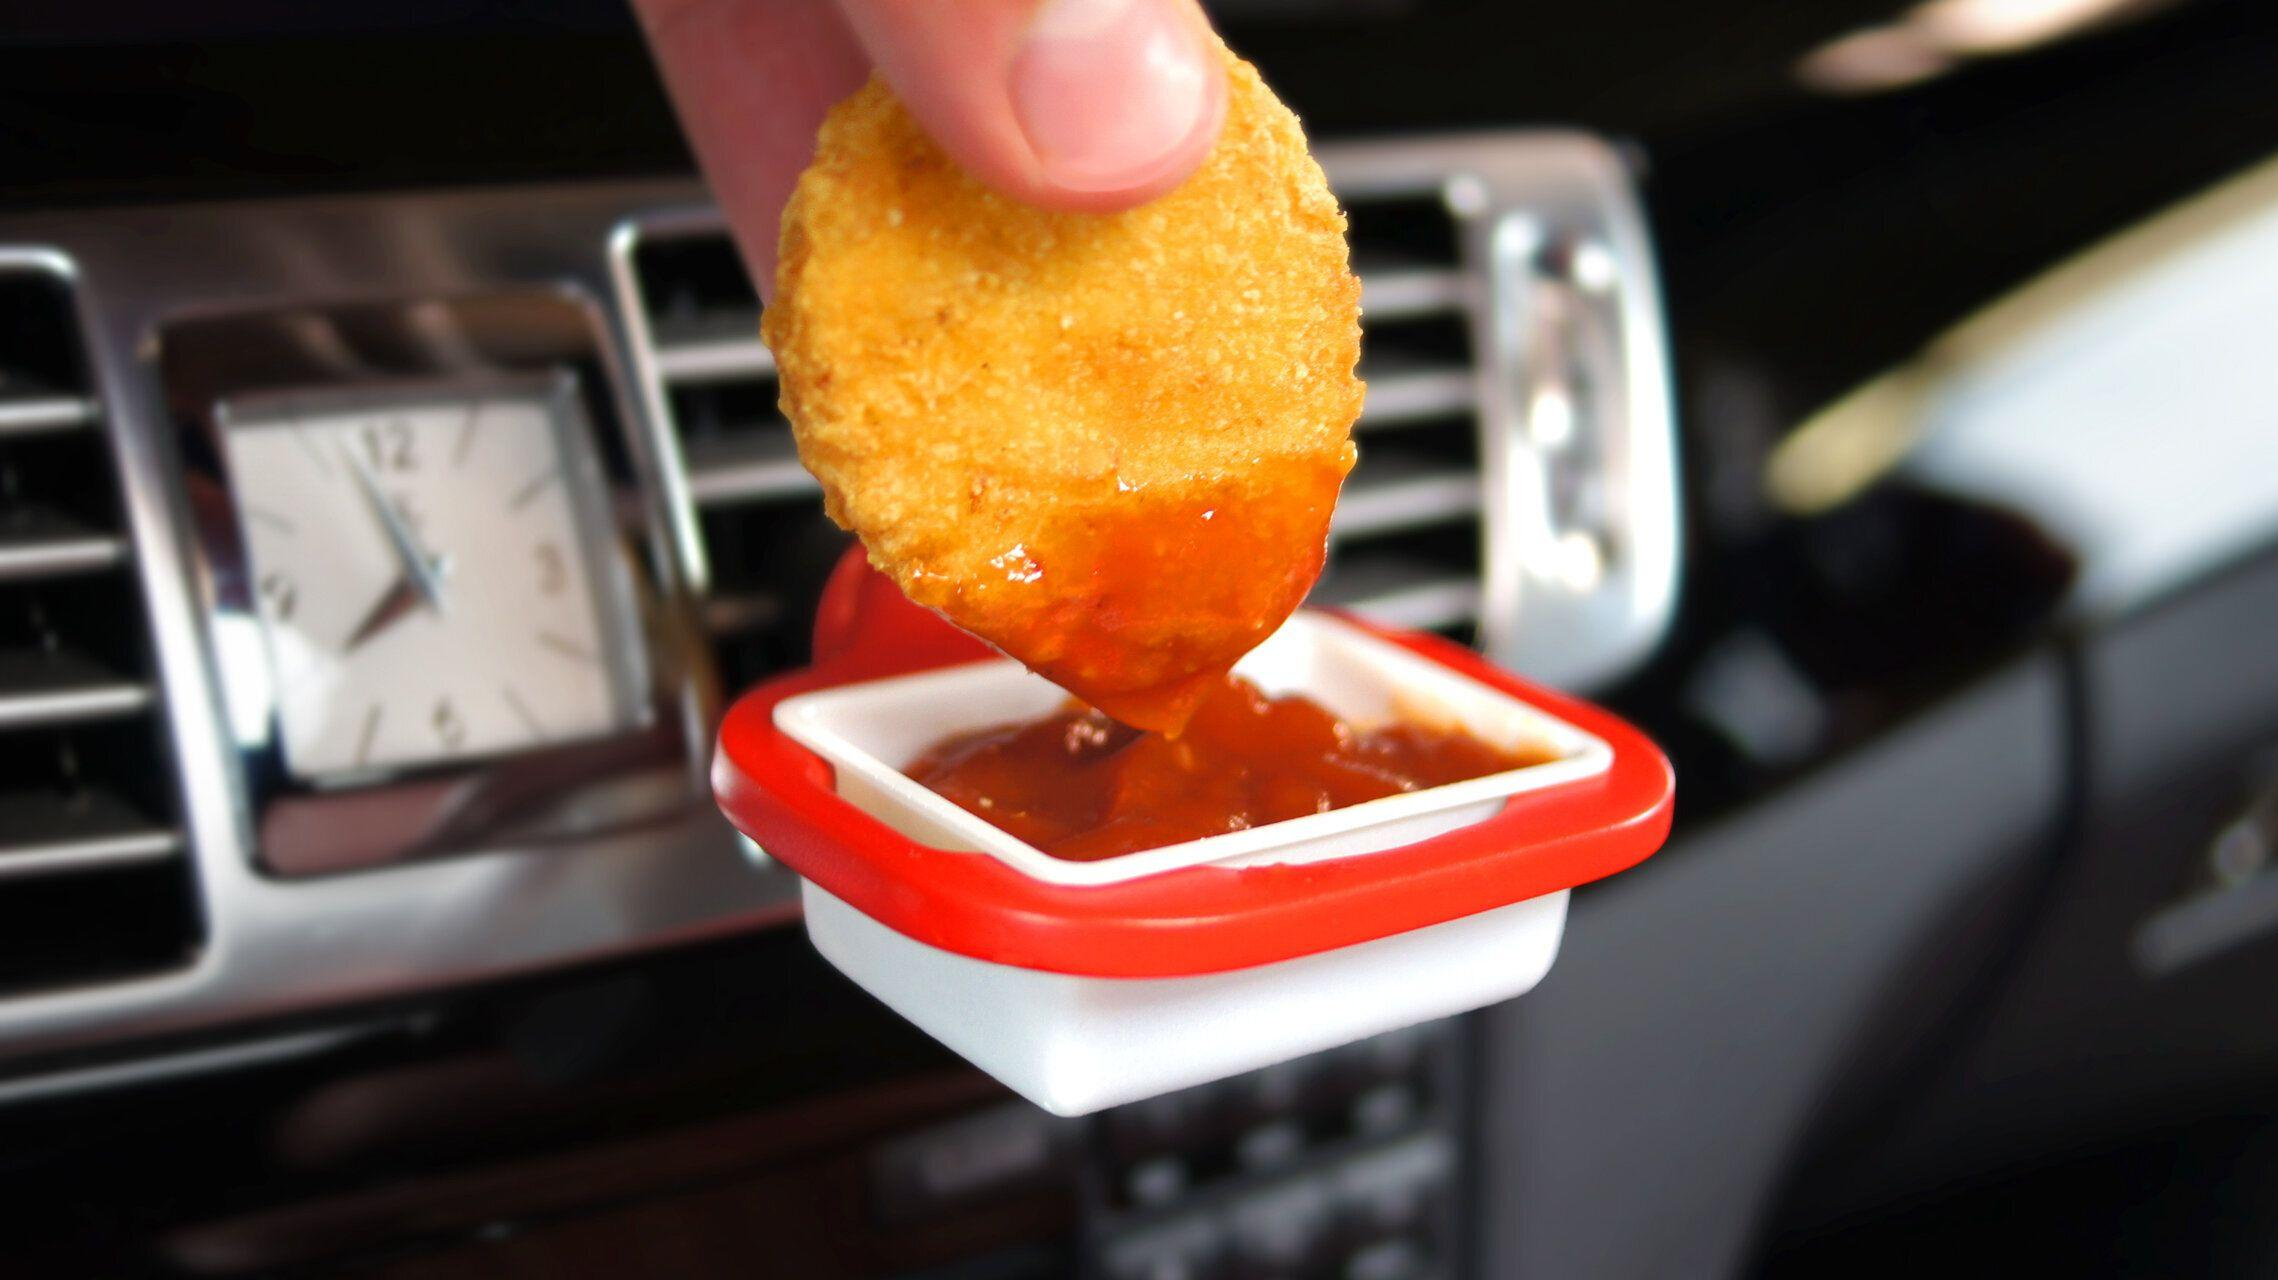 It's the new age of nugs: This genius gizmo clips to your car vent for dipping on the go